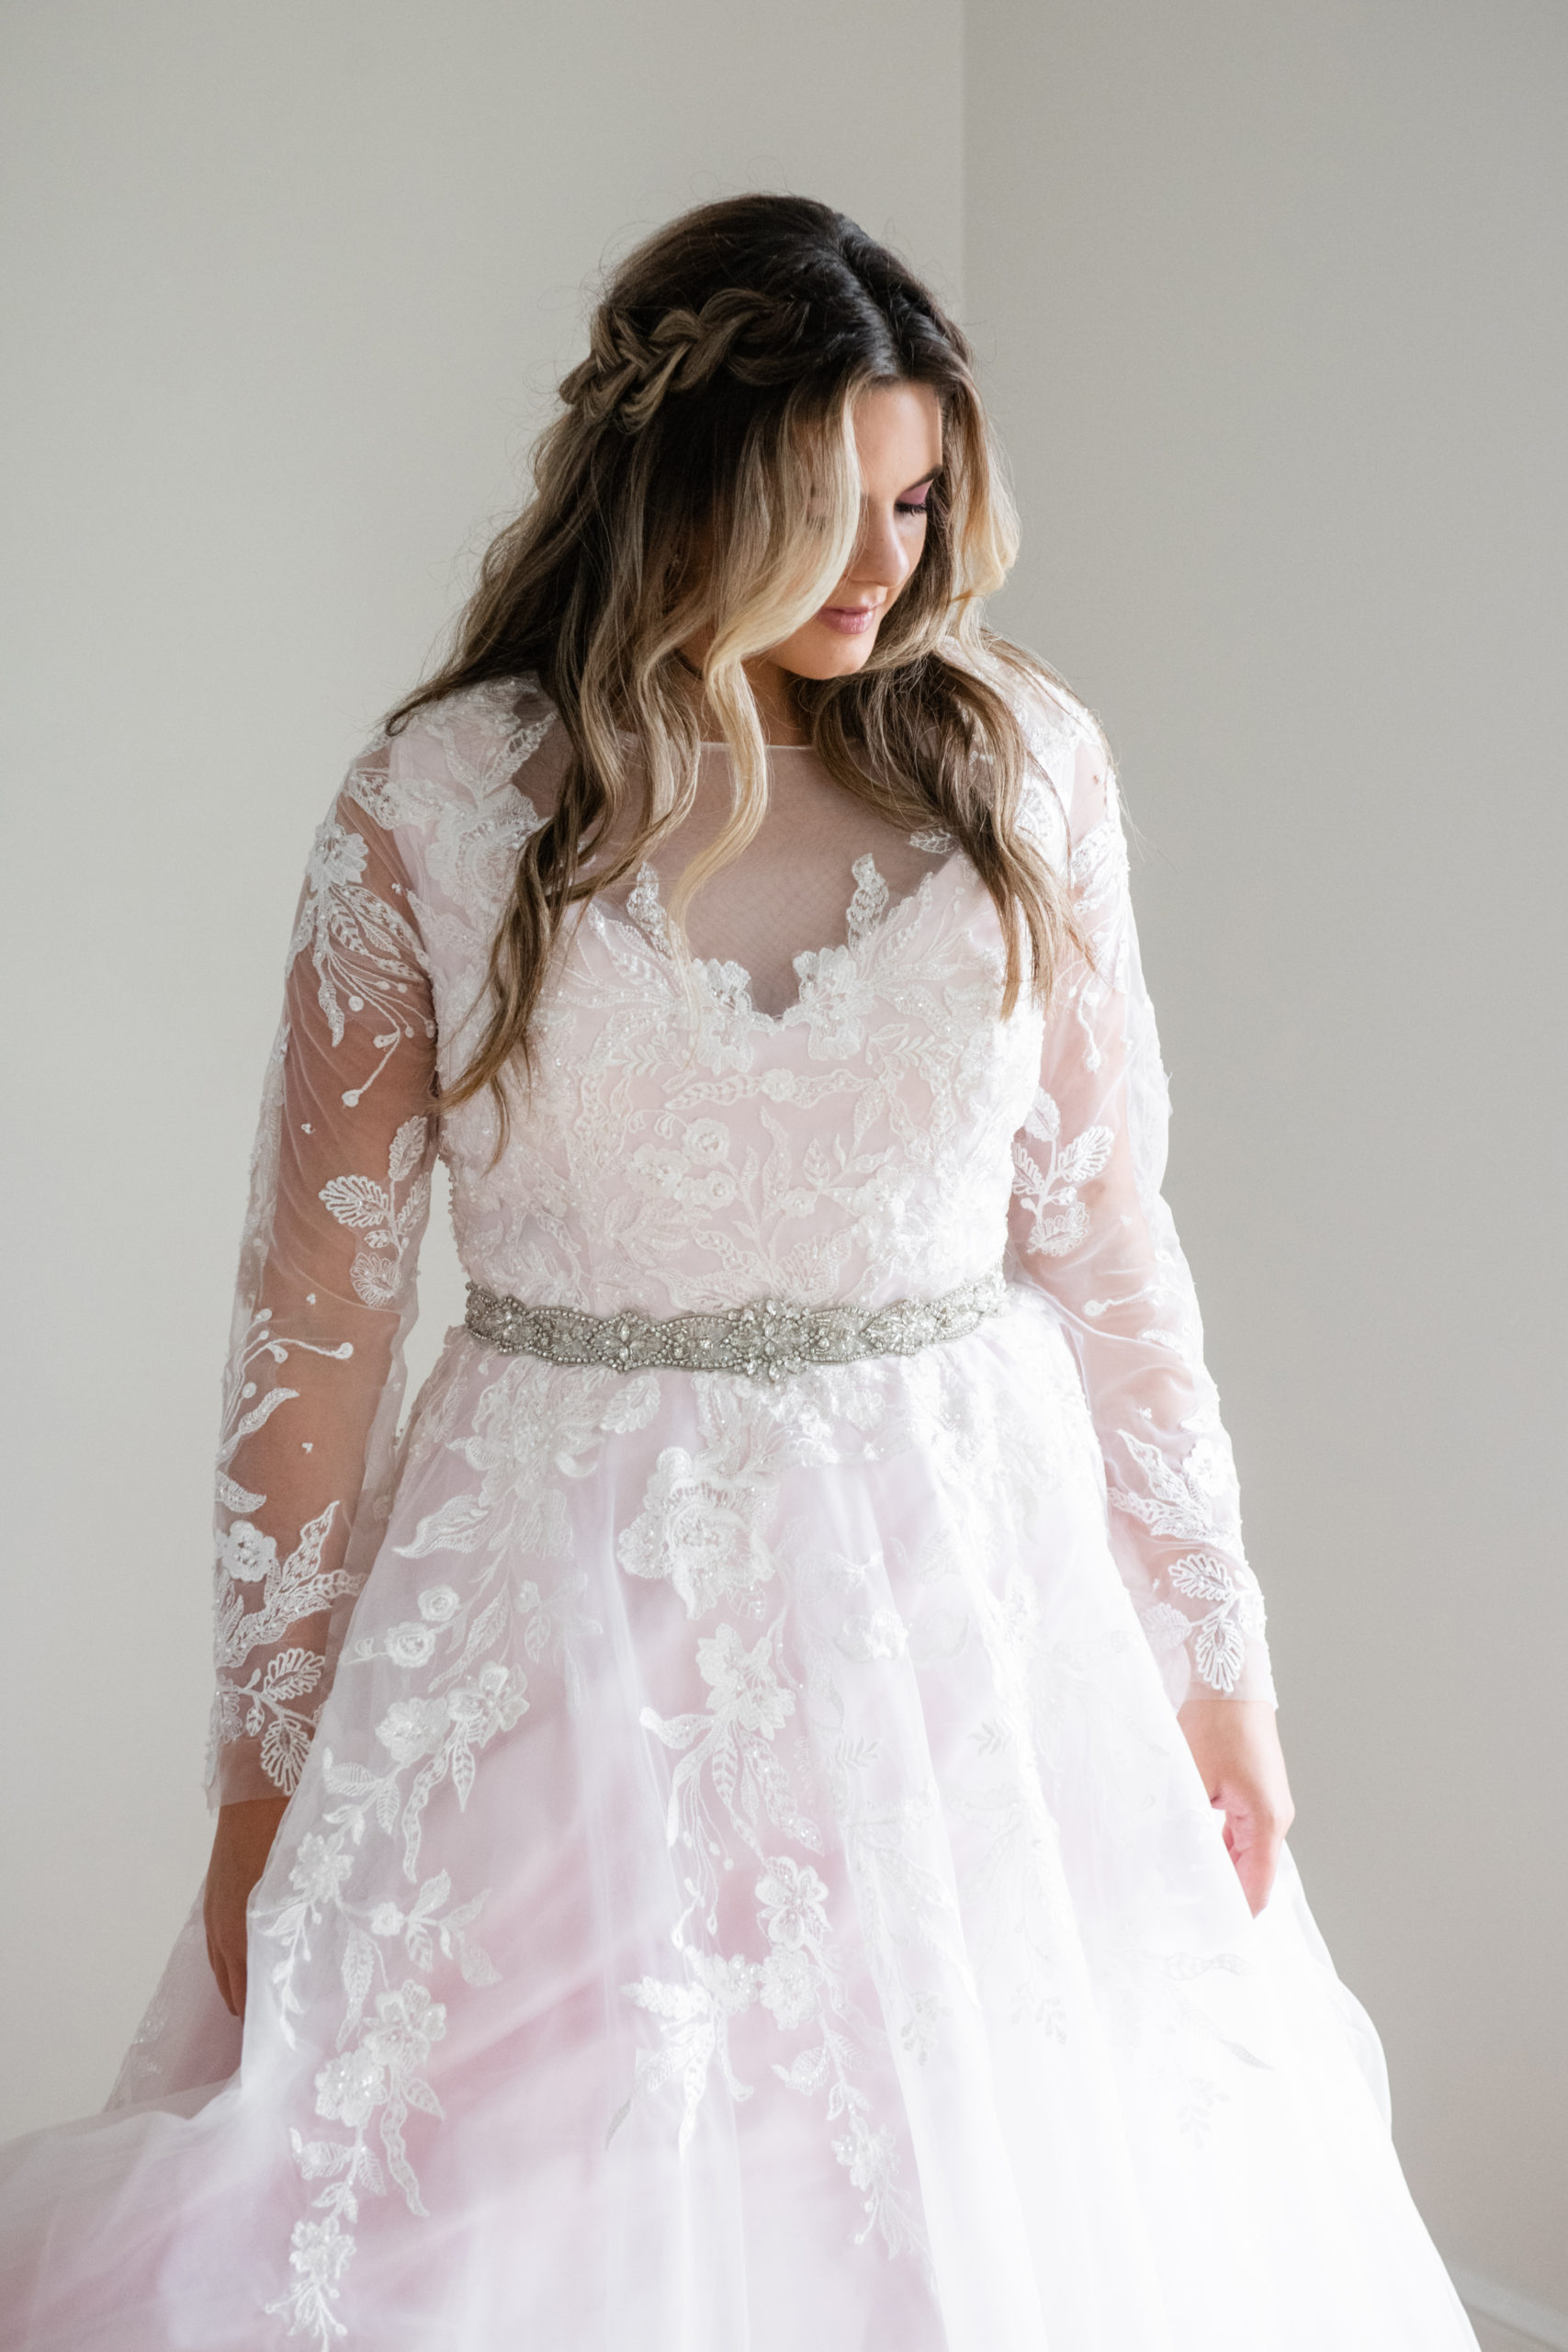 try your plus size wedding gown on | andi b bridal